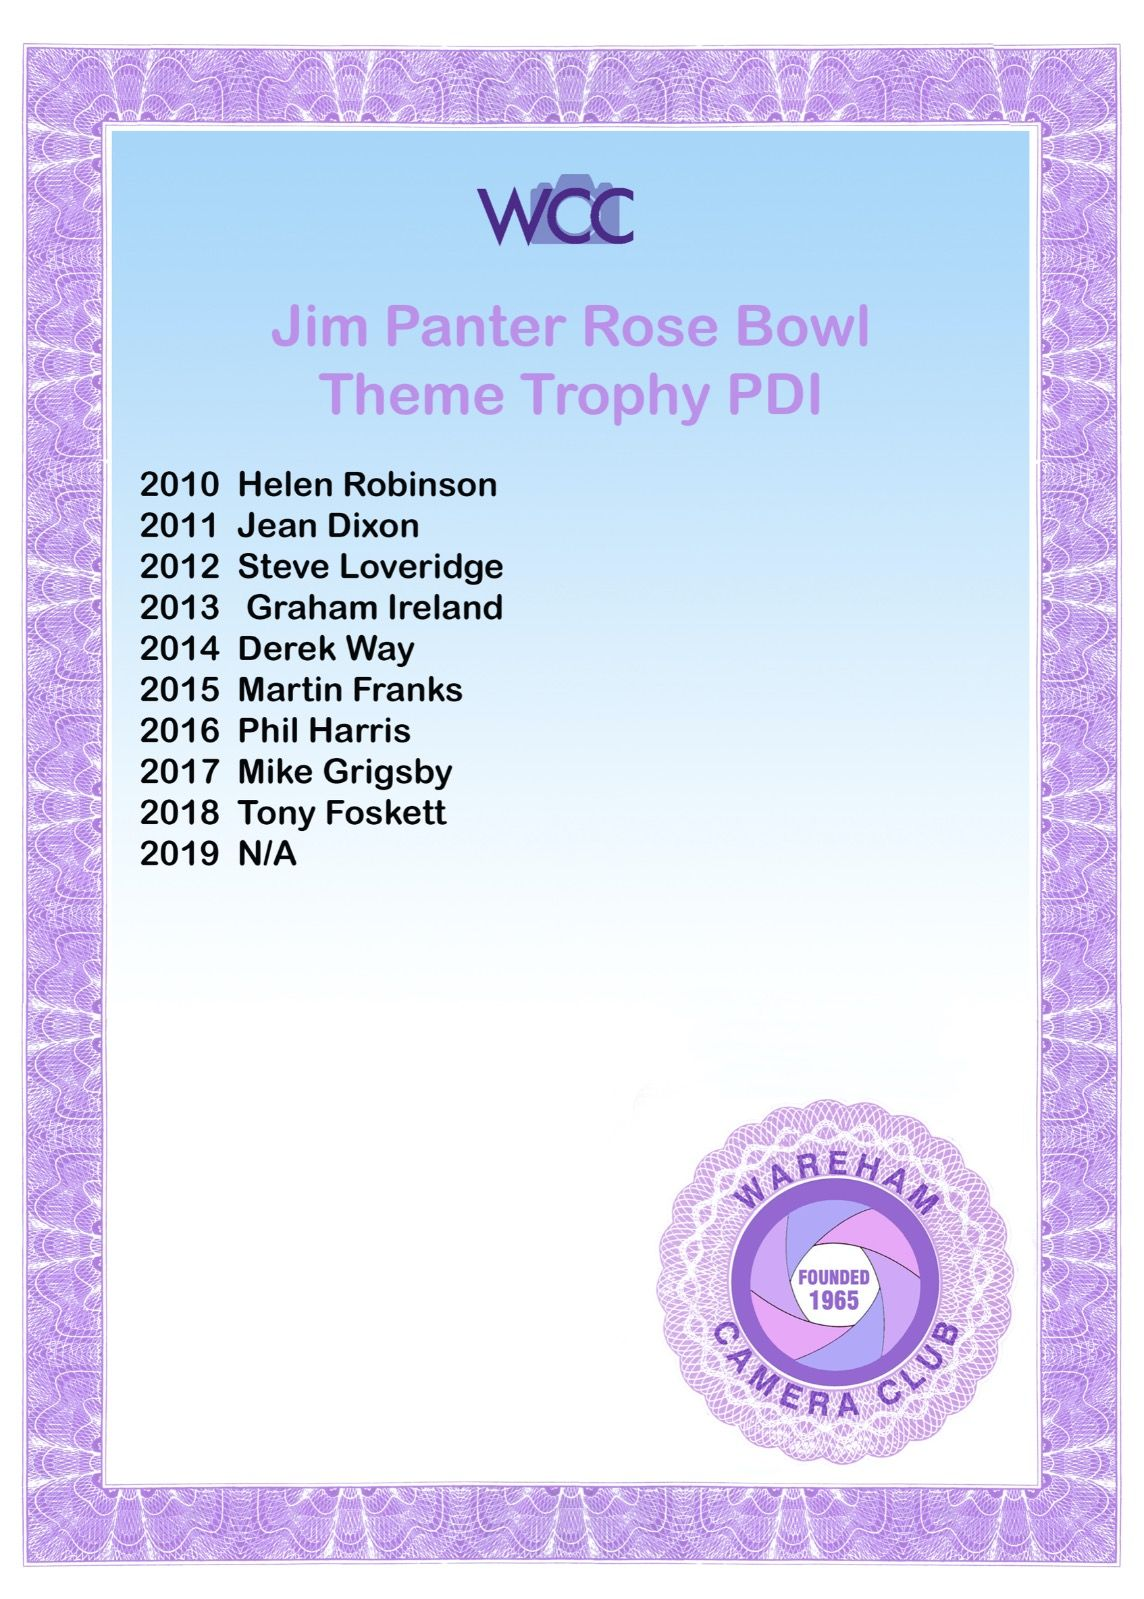 Jim Panter Rose Bowl PDI